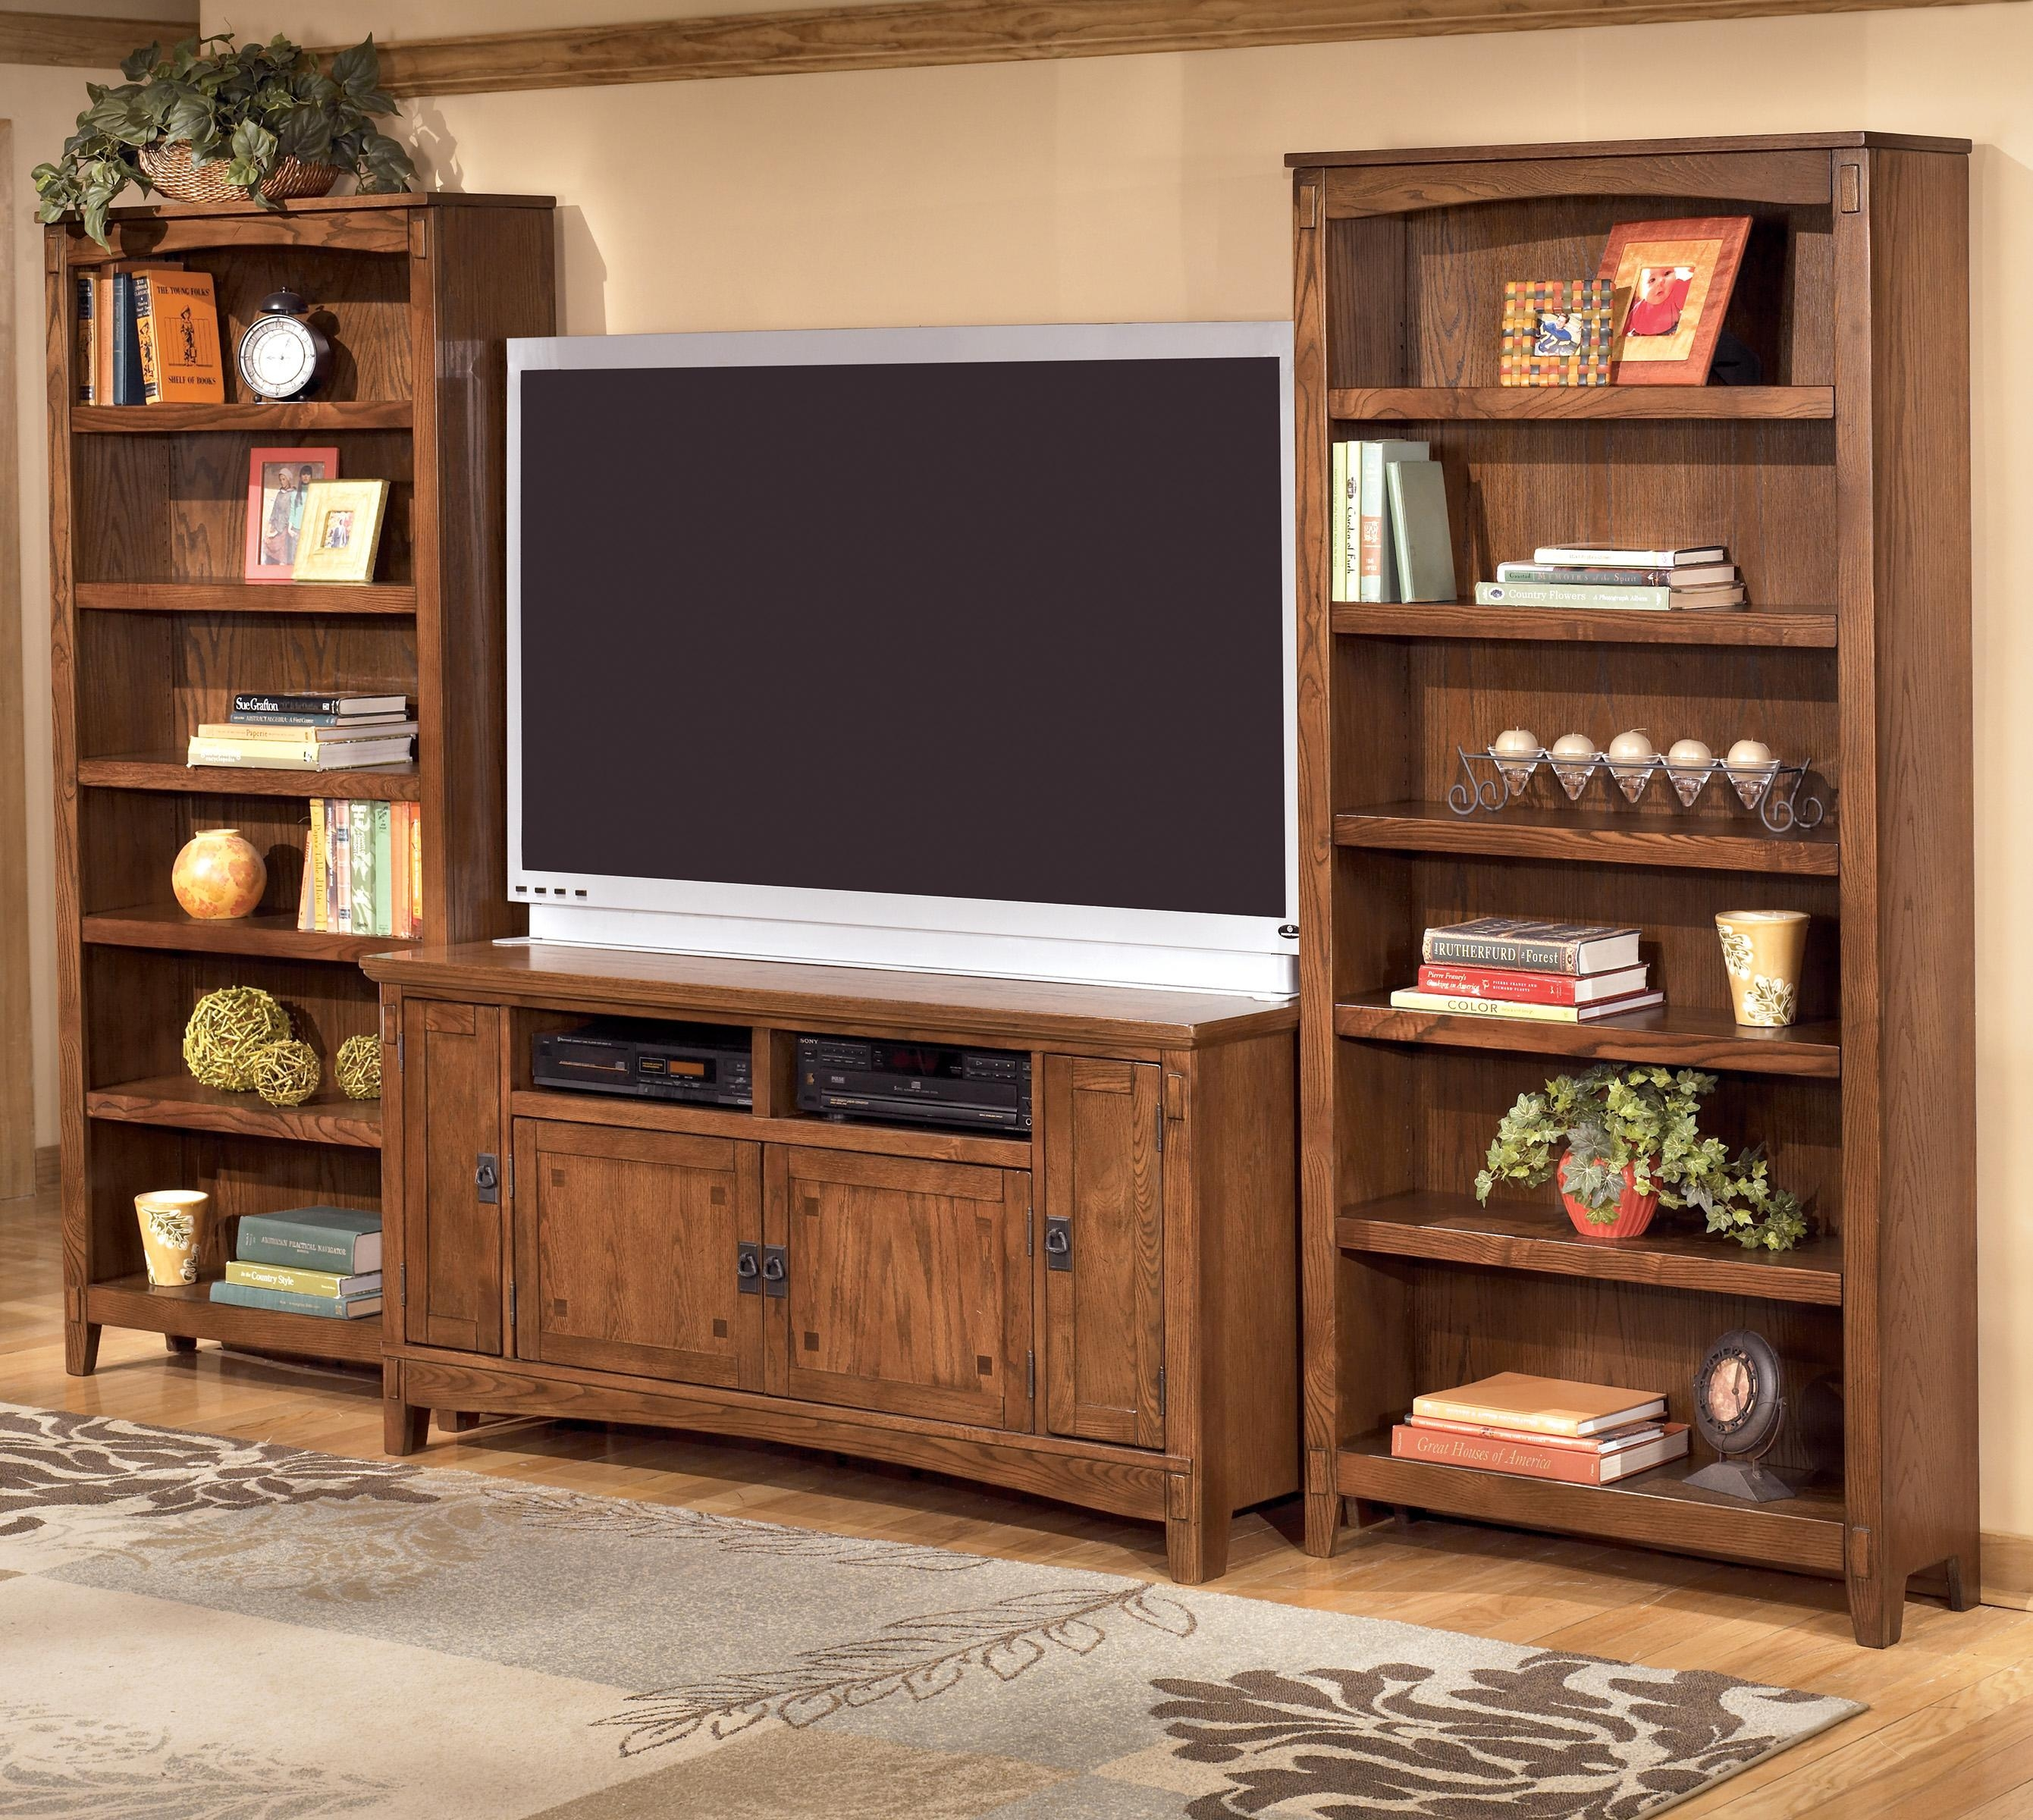 60 Inch Tv Stand 2 Large Bookcases Ashley Furniture Wolf With Regard To Tv Book Case (View 14 of 14)